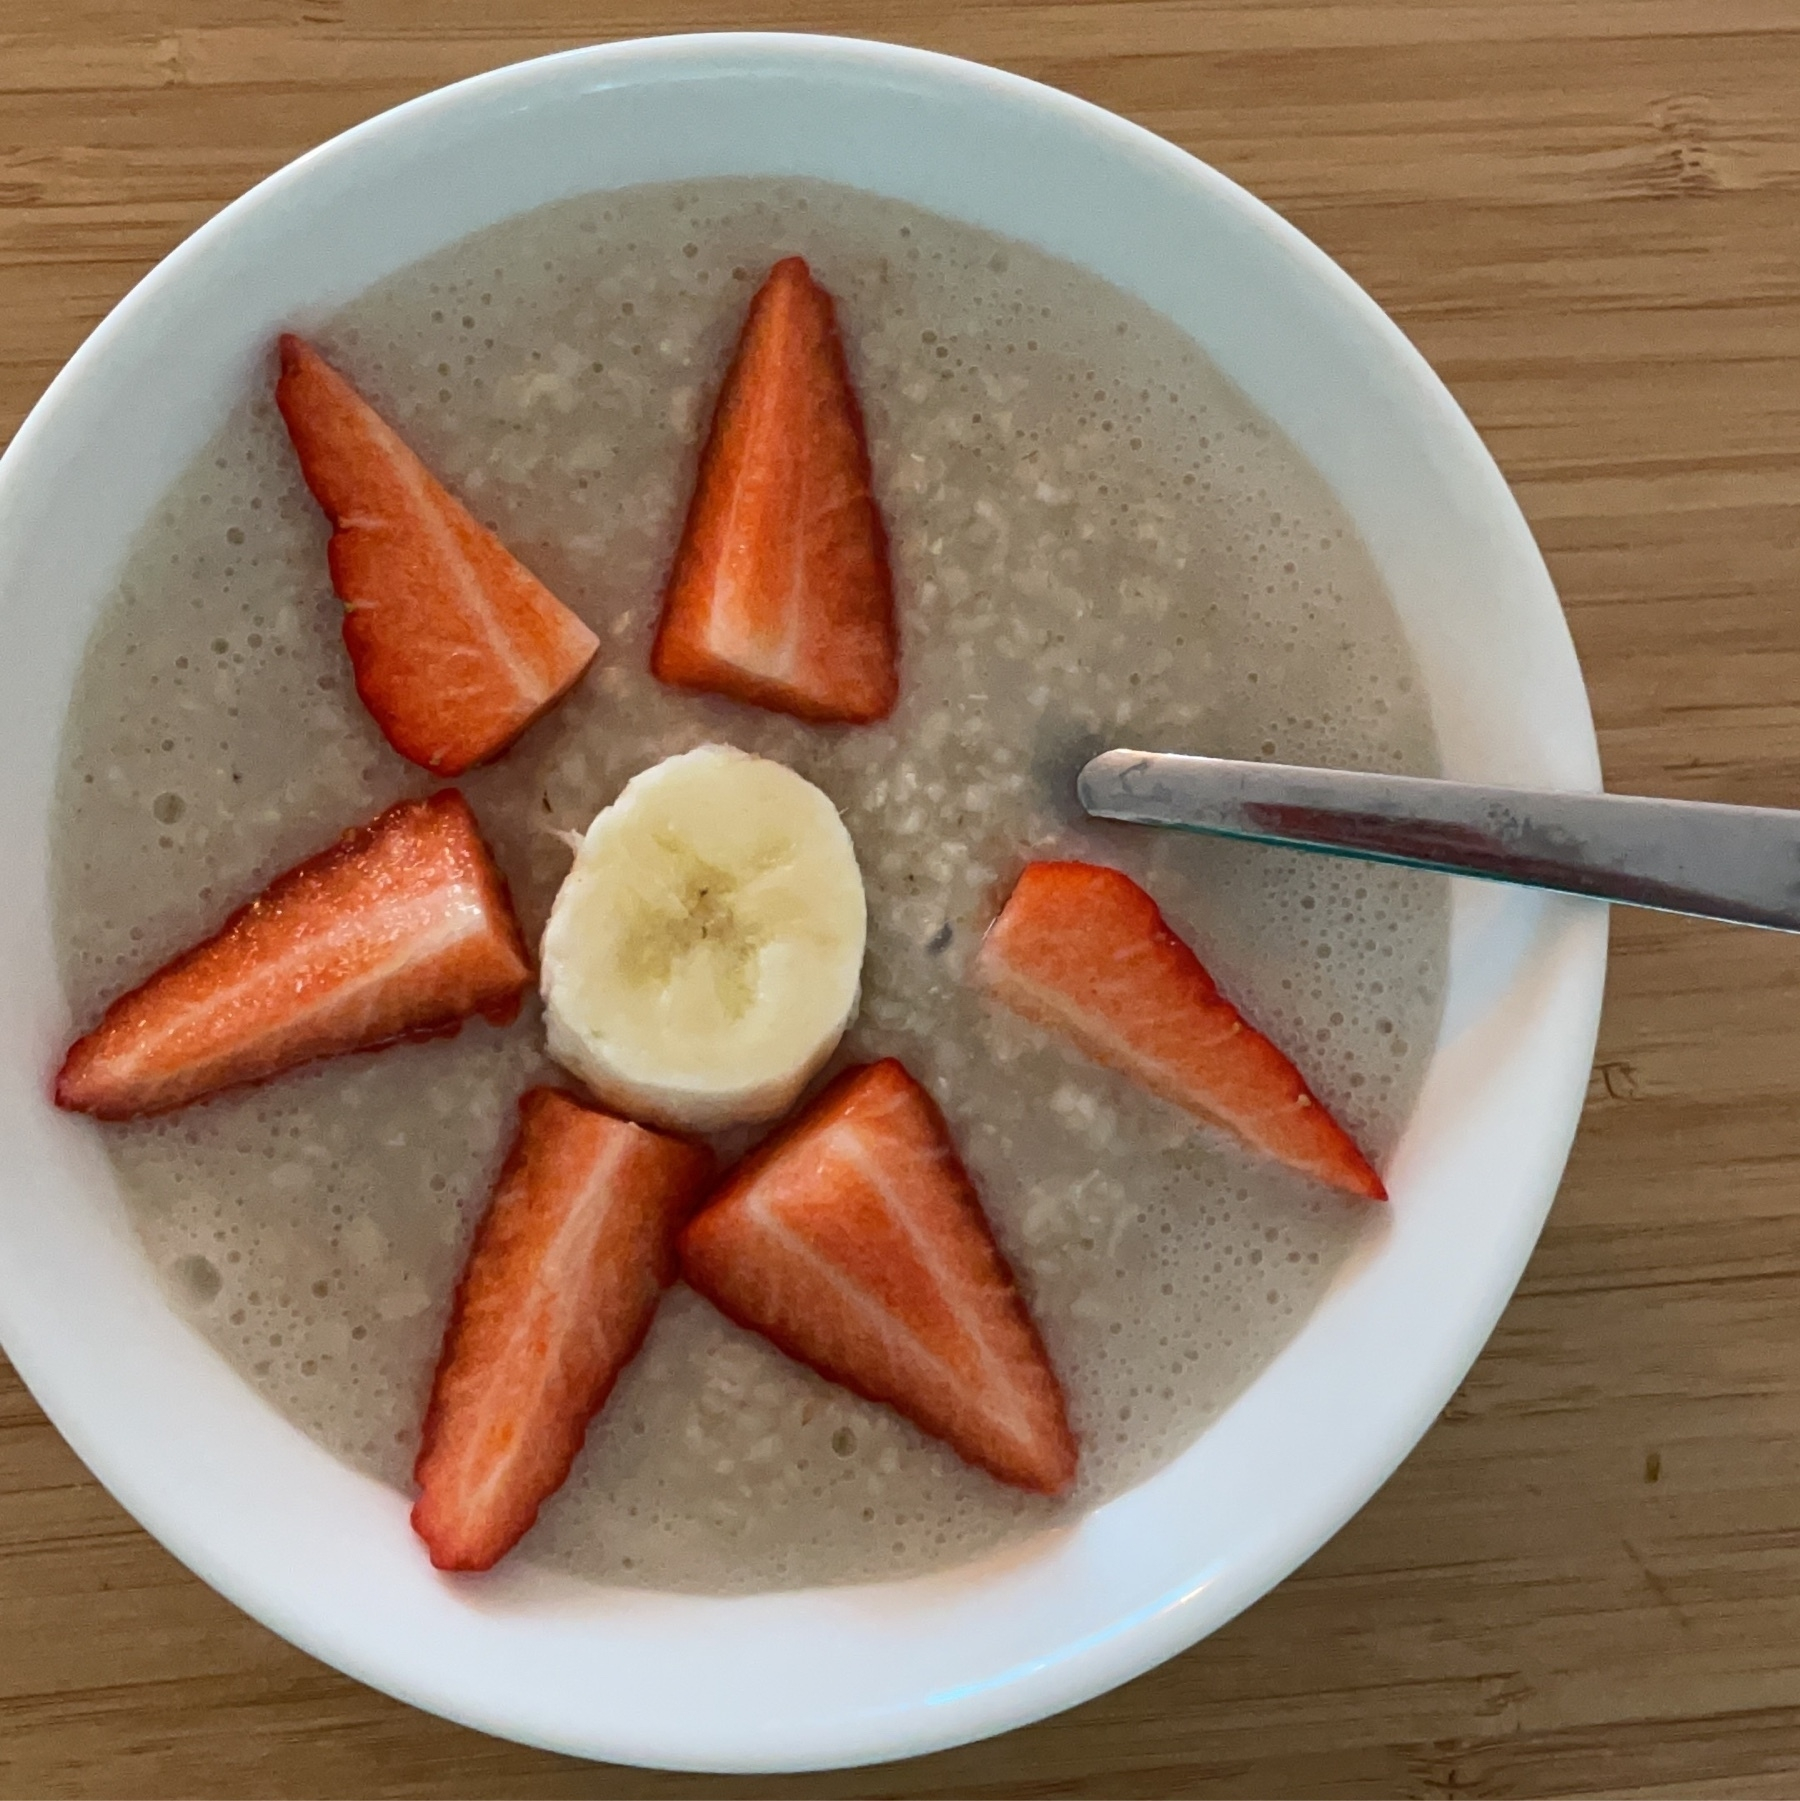 porridge with strawberries laid down in flower shape with a slice of banana in the middle